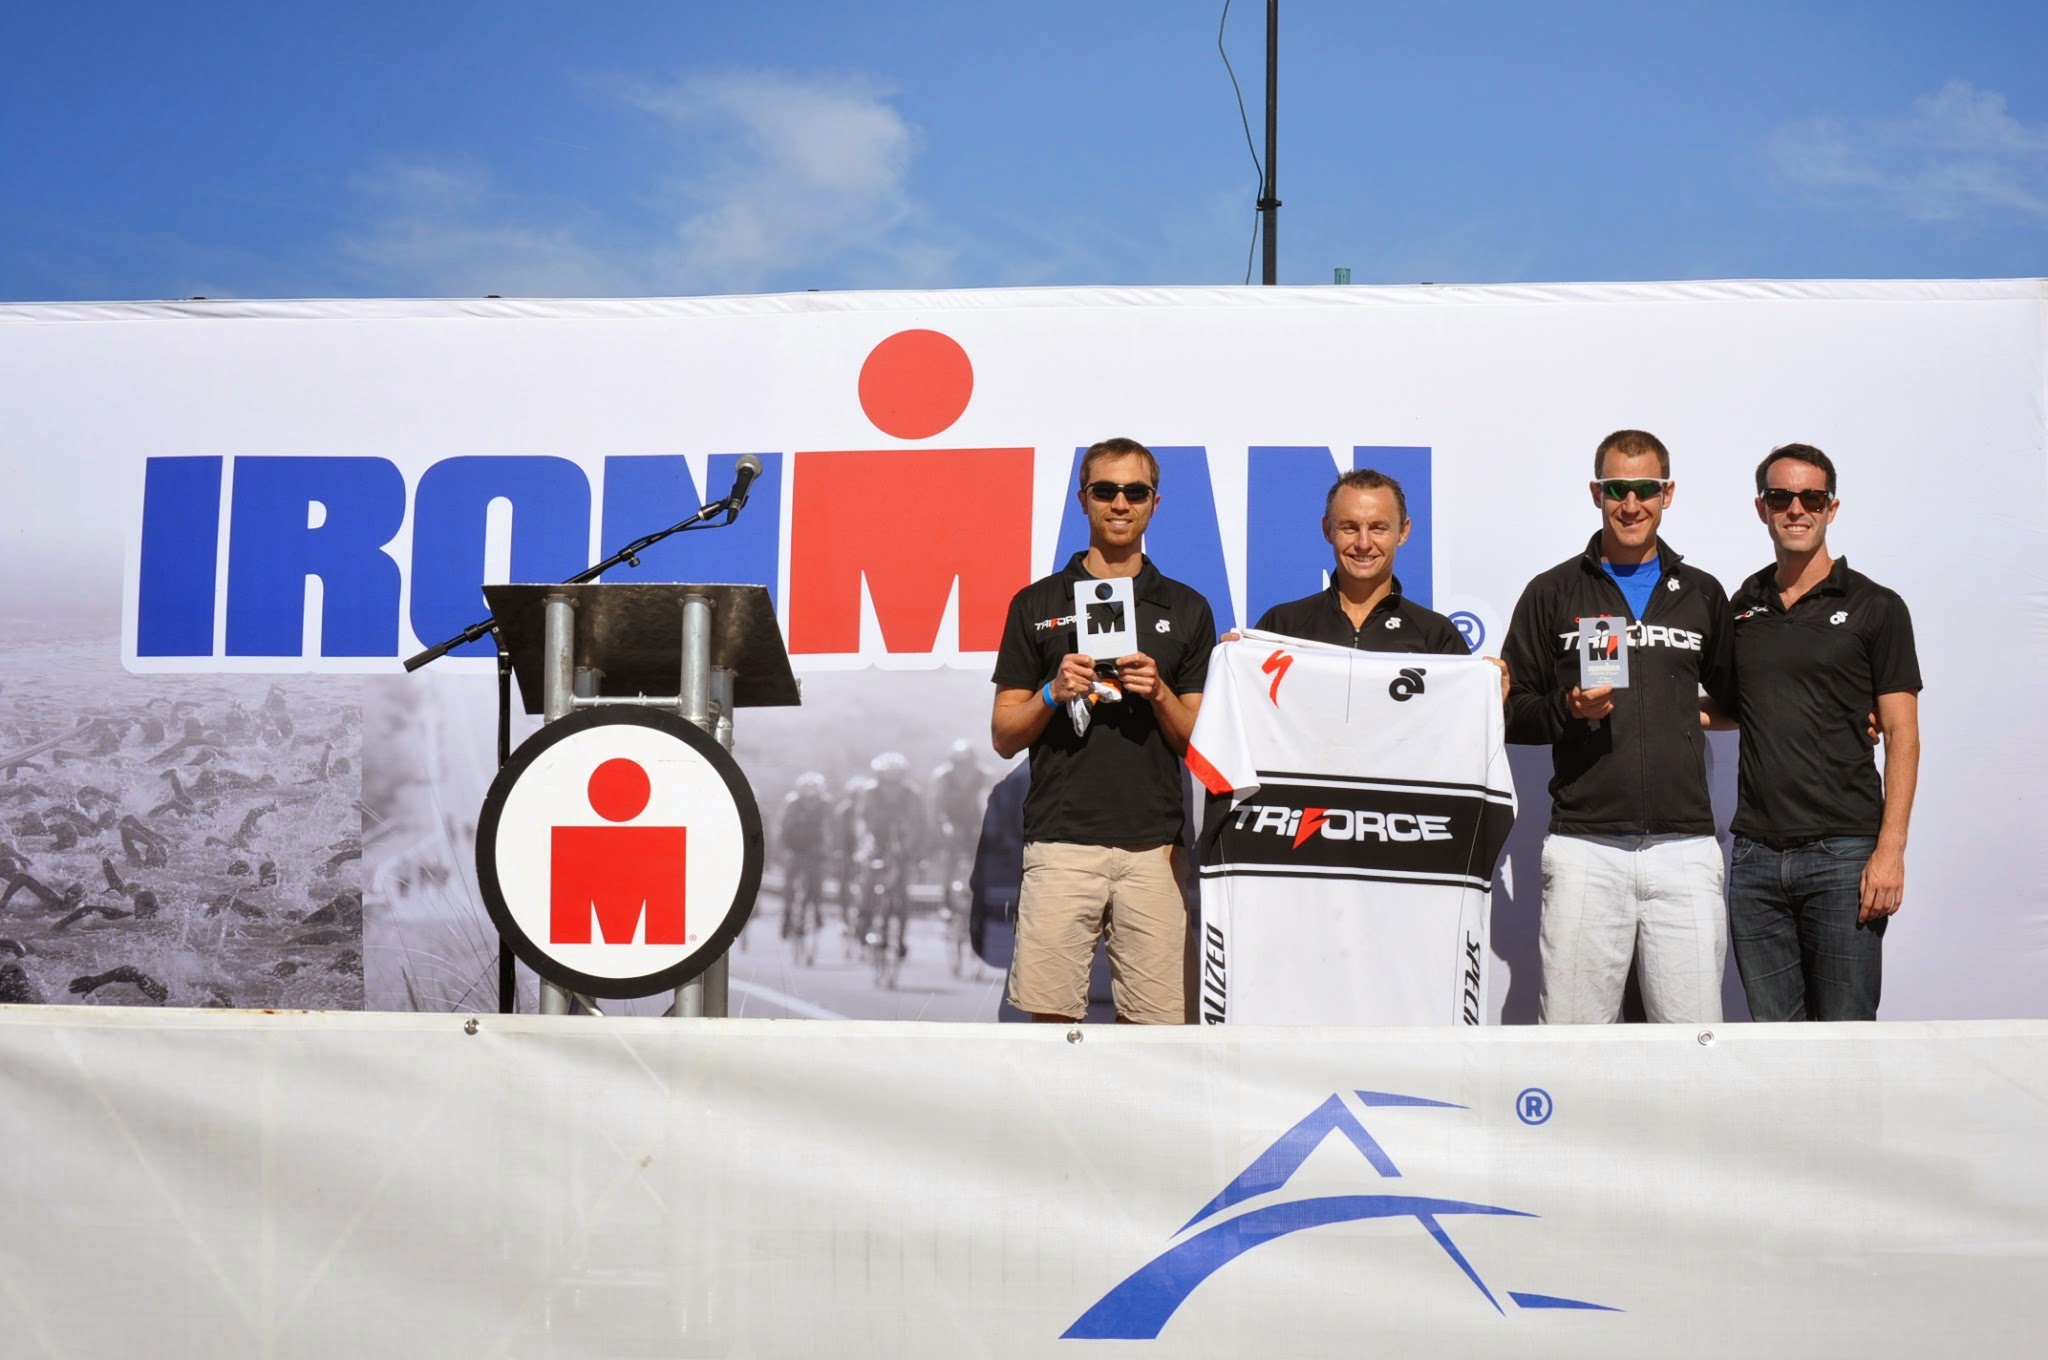 TriForce at Santa Cruz 70.3 – 5 podiums, 3 more top 10s, club championship, tons of PRs and strong performances!